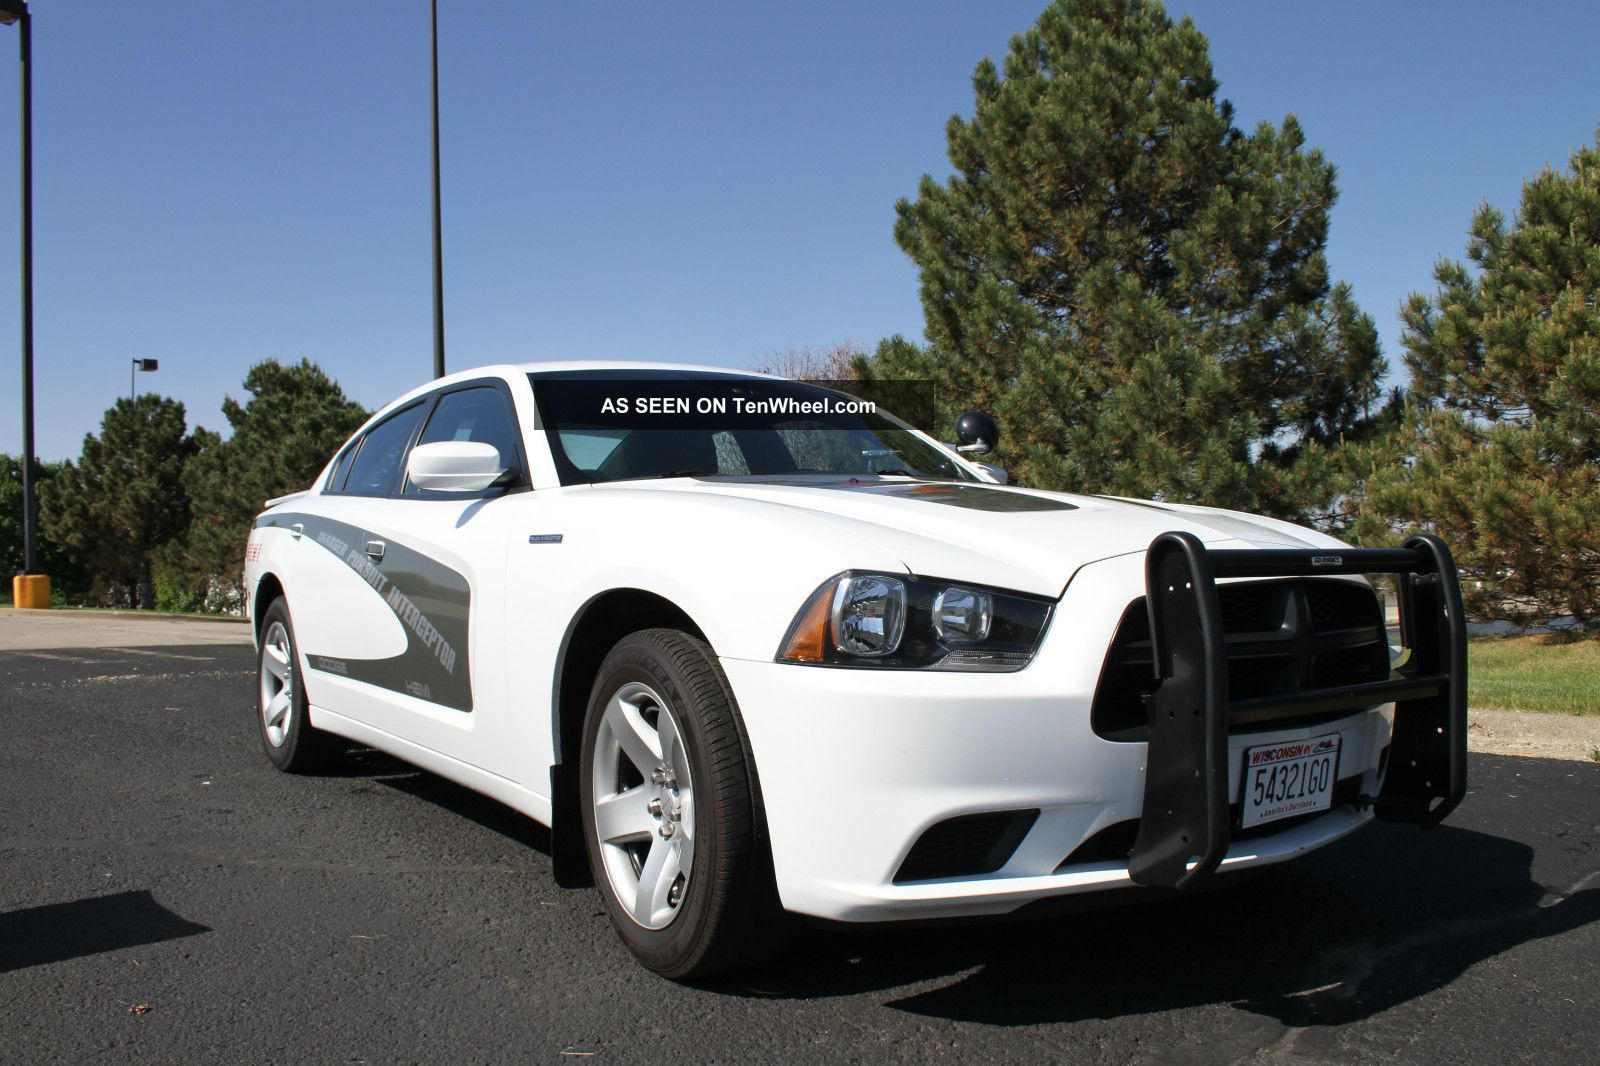 2011 Dodge Charger Police Pursuit Interceptor Hemi 5 7 Liter